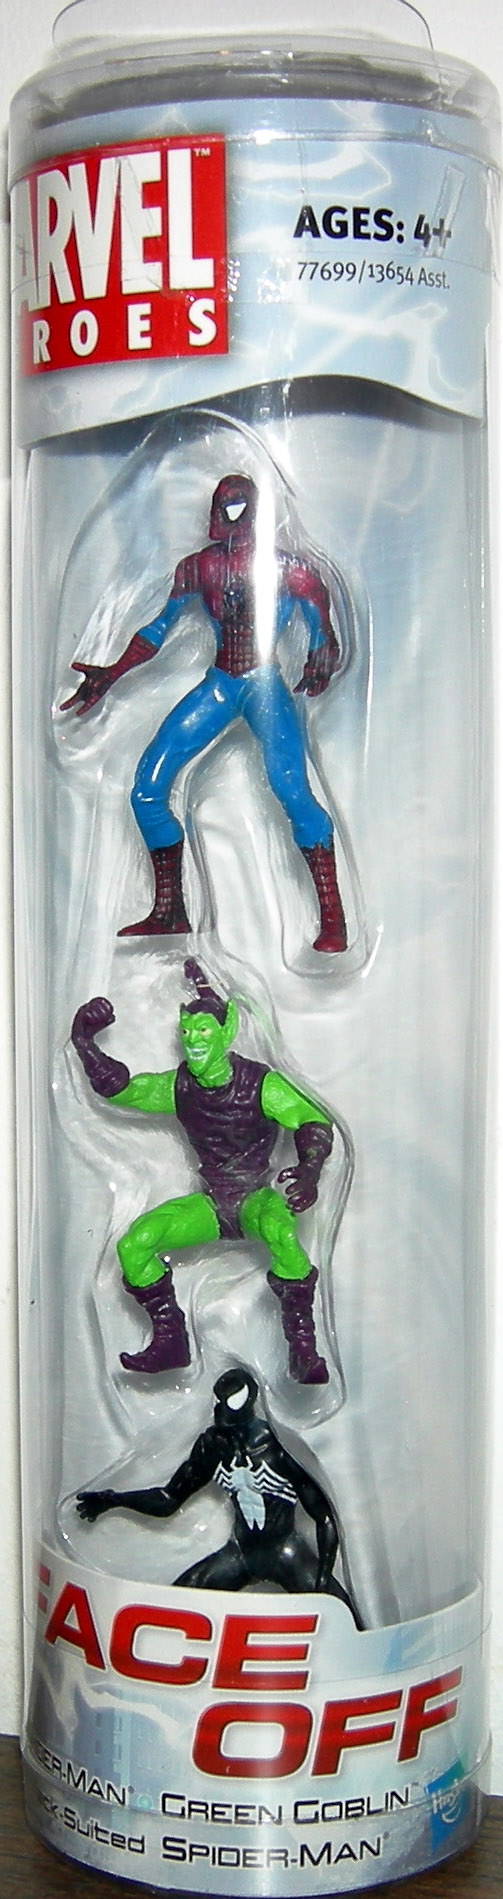 Spider-Man, Green Goblin and Black-Suited Spider-Man (Face Off)